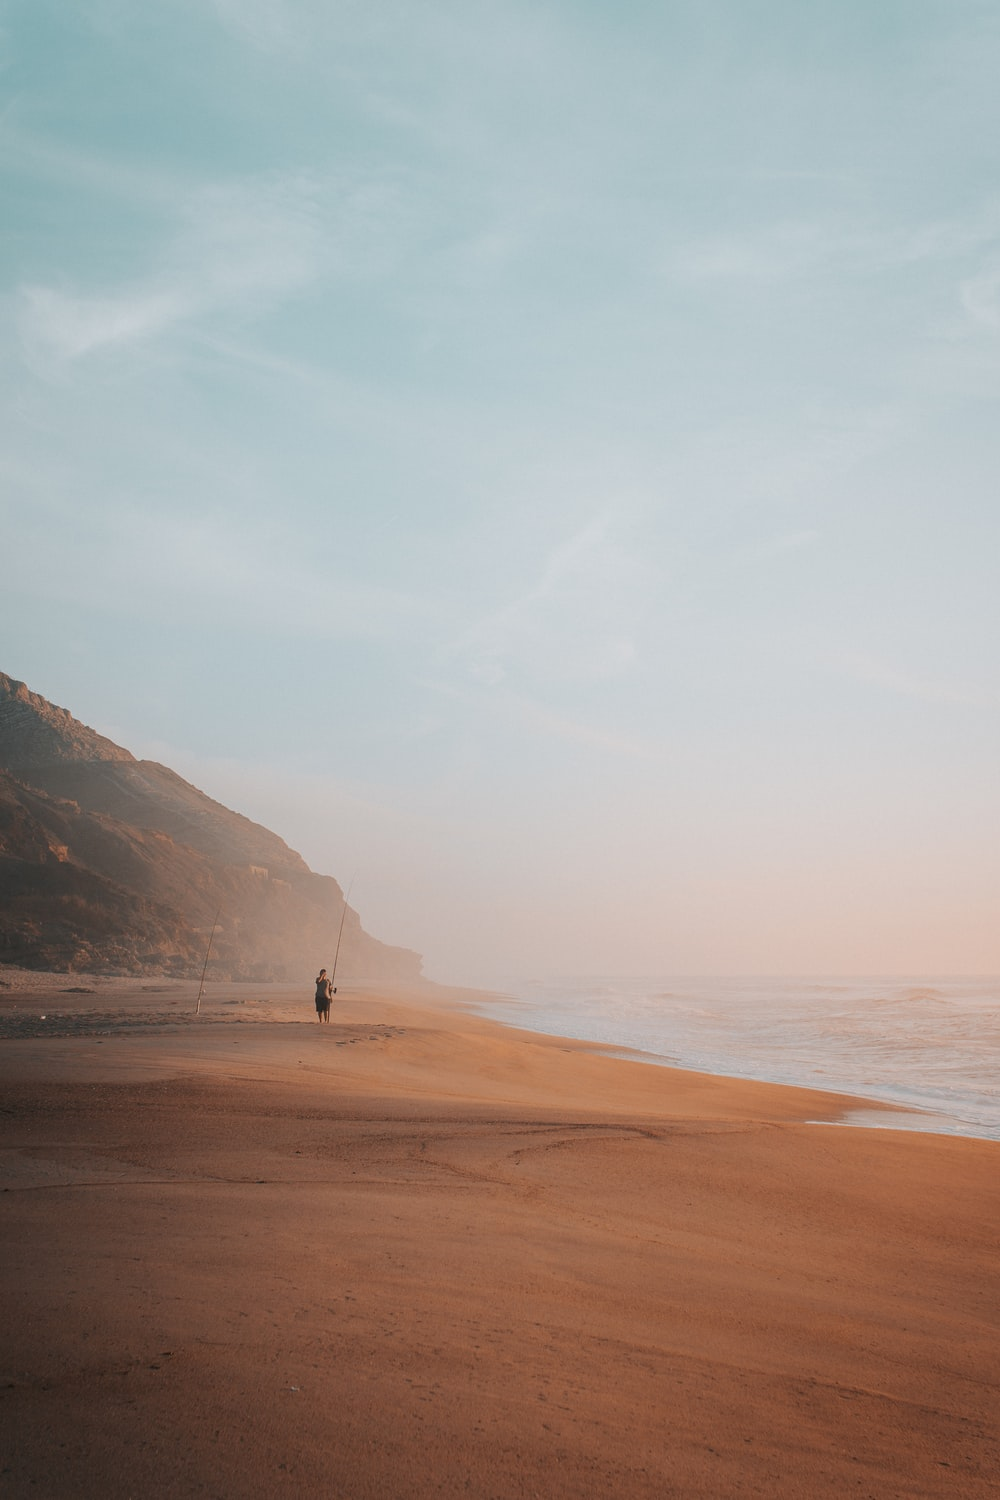 person on sand seashore during day